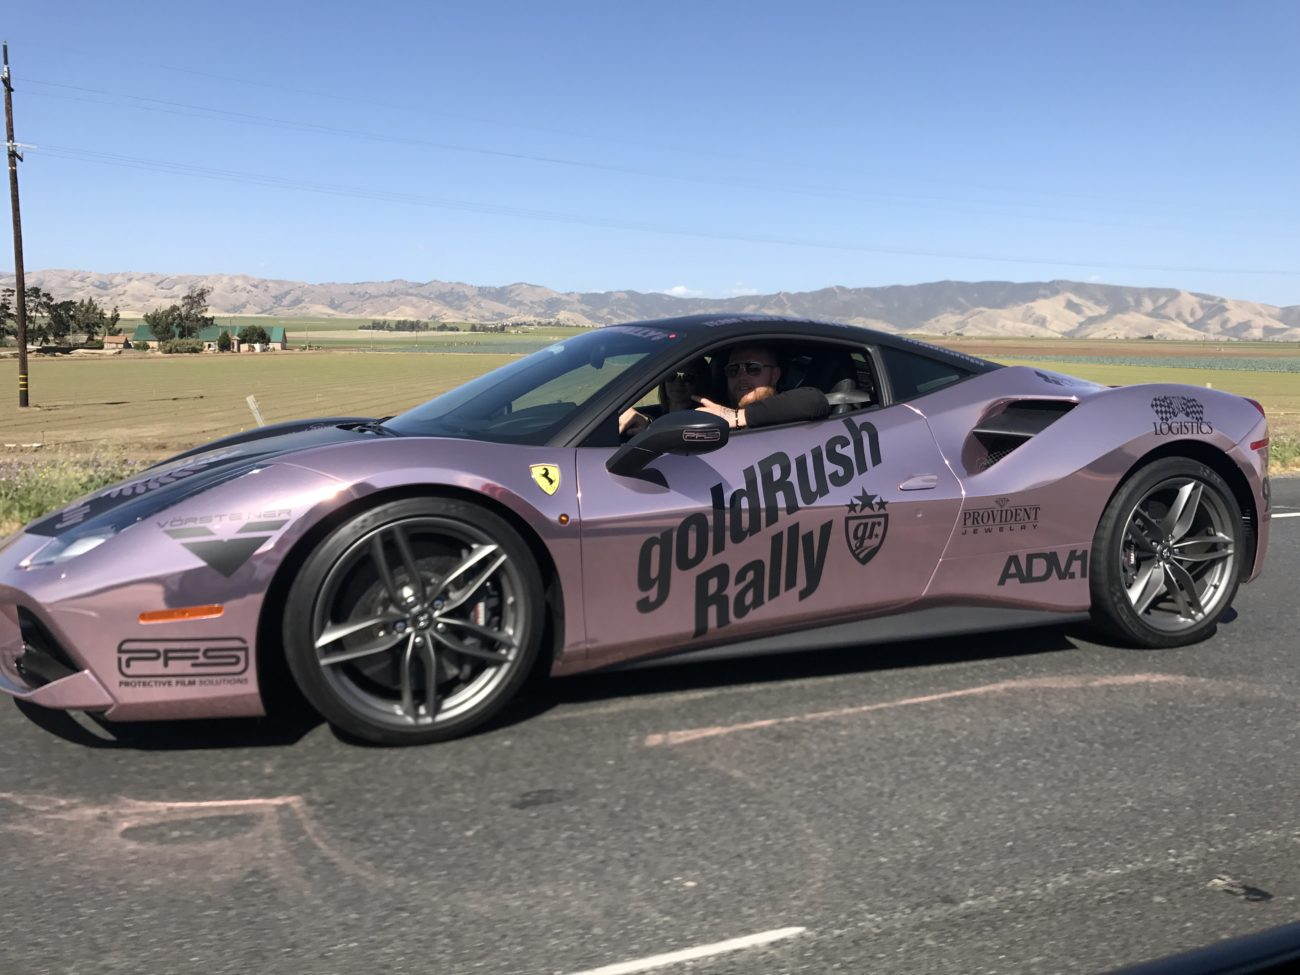 Steve & Pascale in their beautiful Ferrari 488